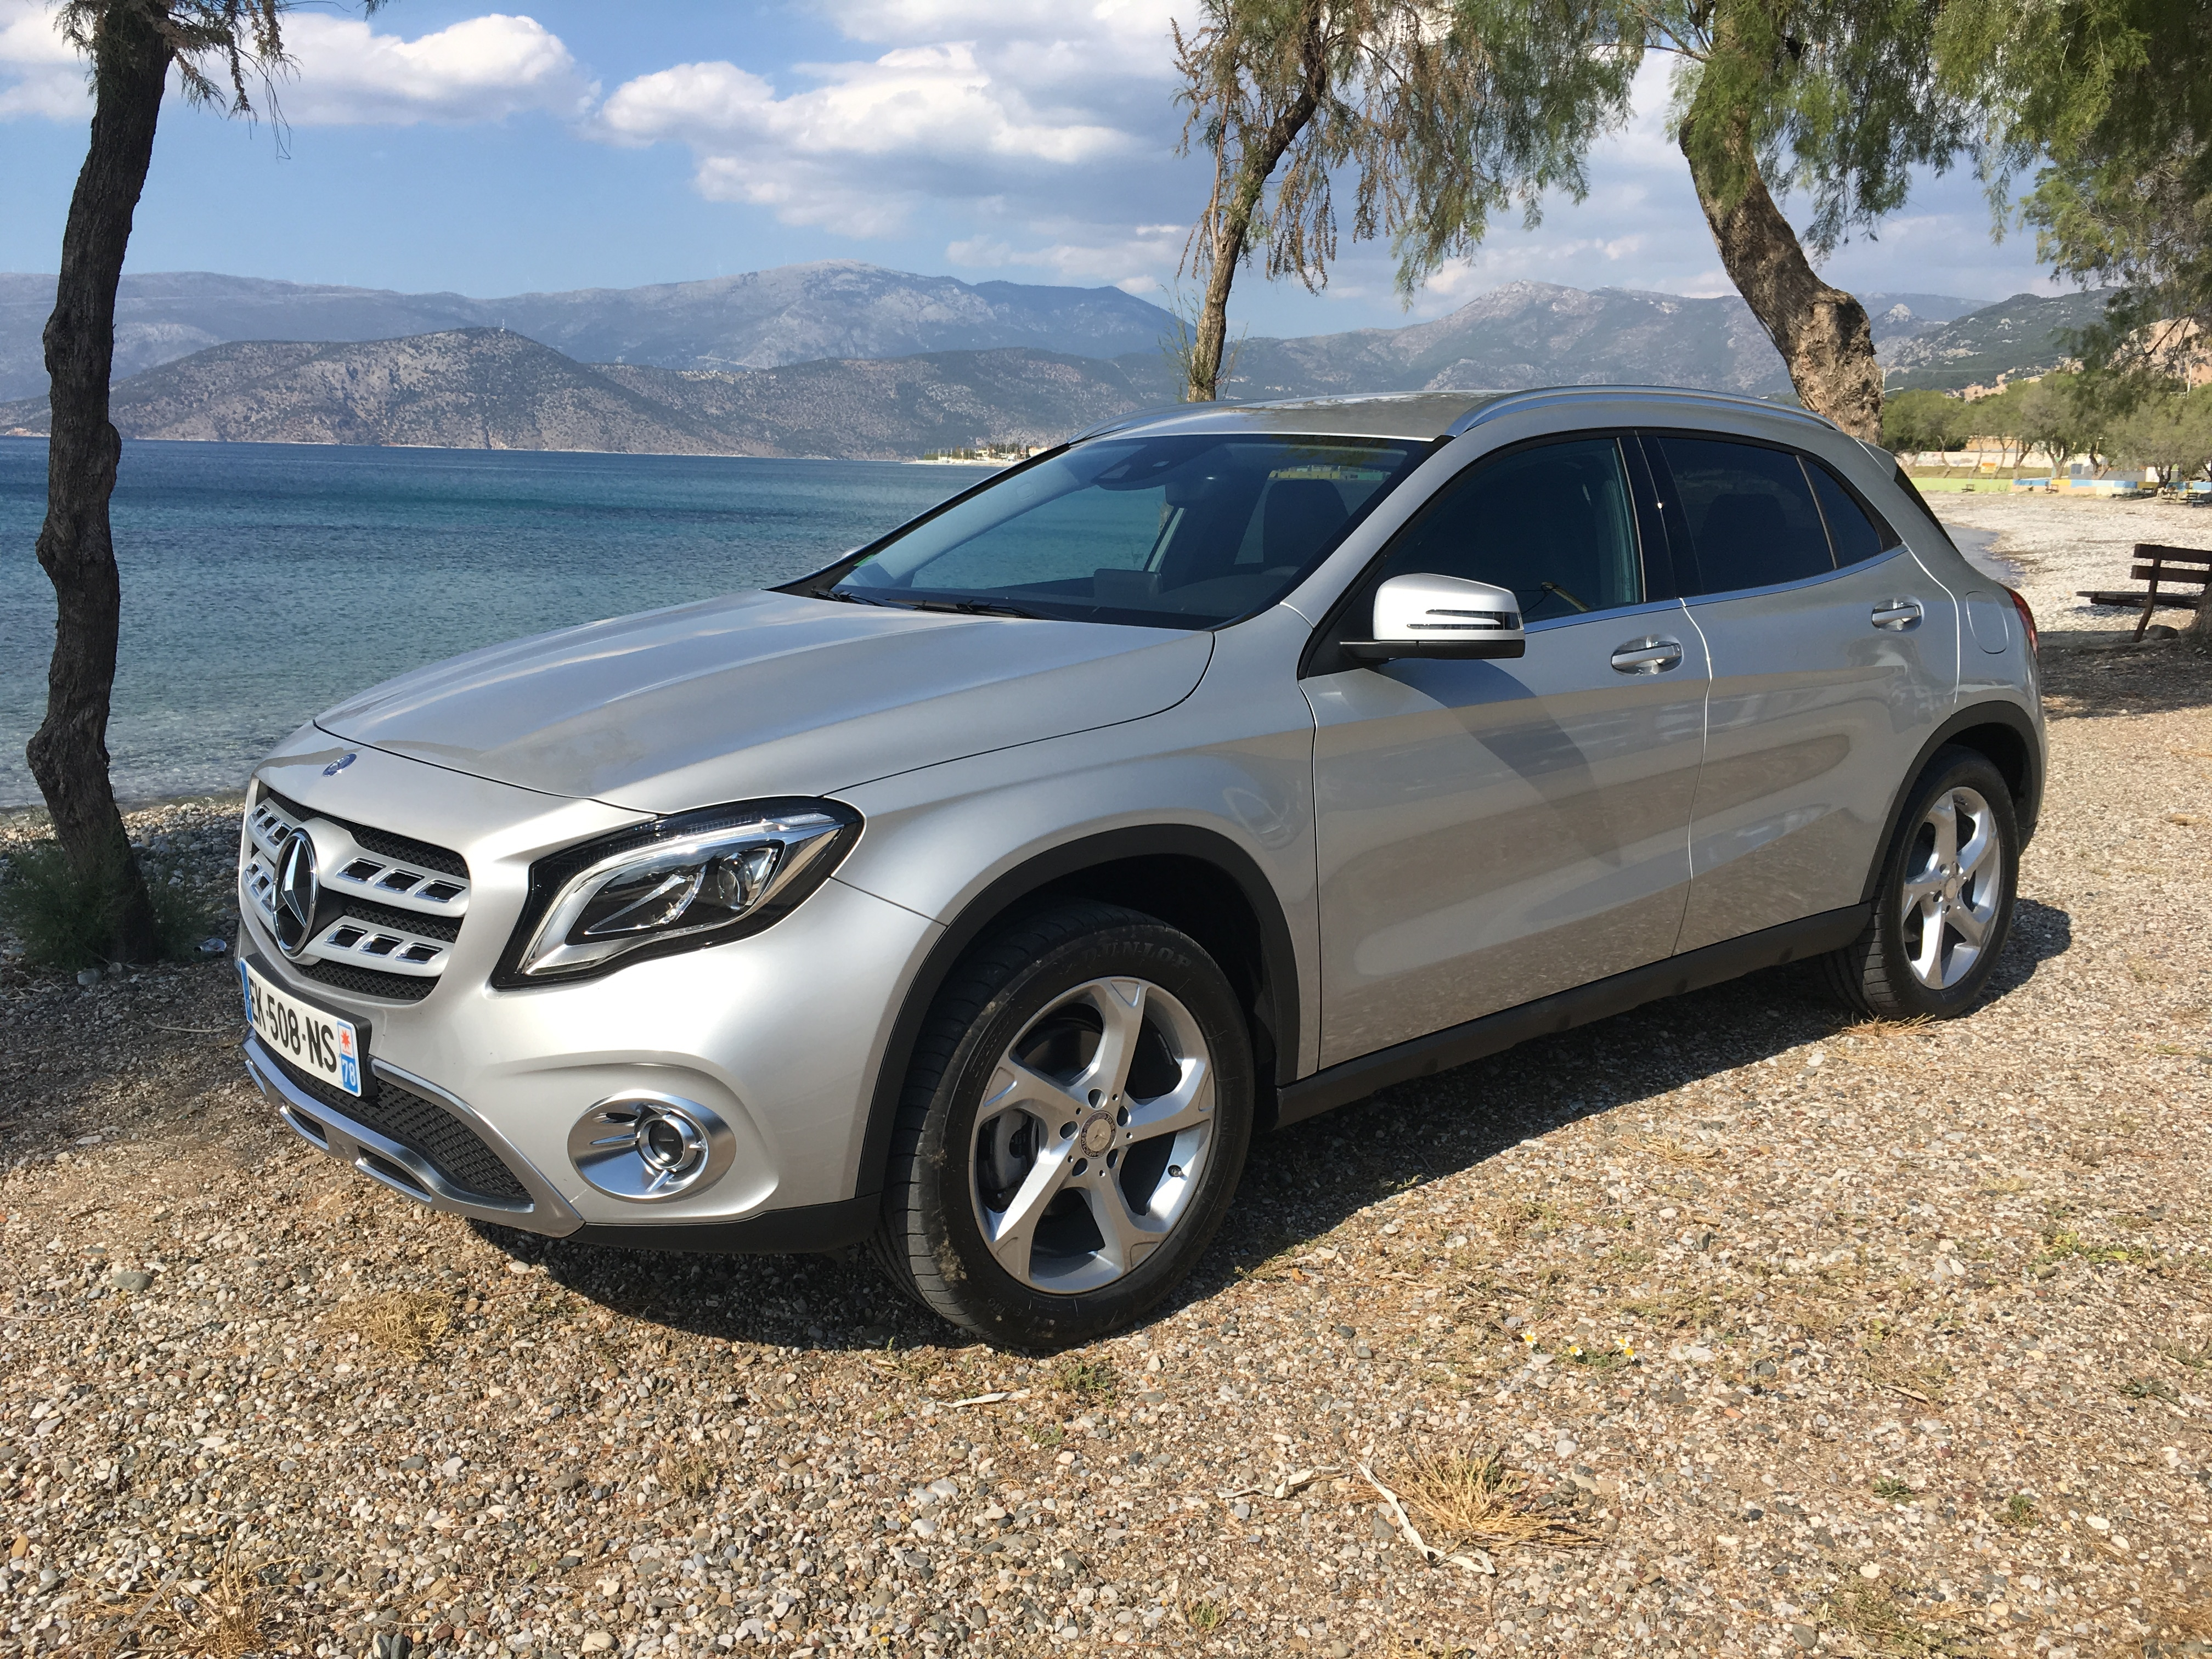 mercedes gla restyl les premi res images de l 39 essai en live impressions de conduite. Black Bedroom Furniture Sets. Home Design Ideas